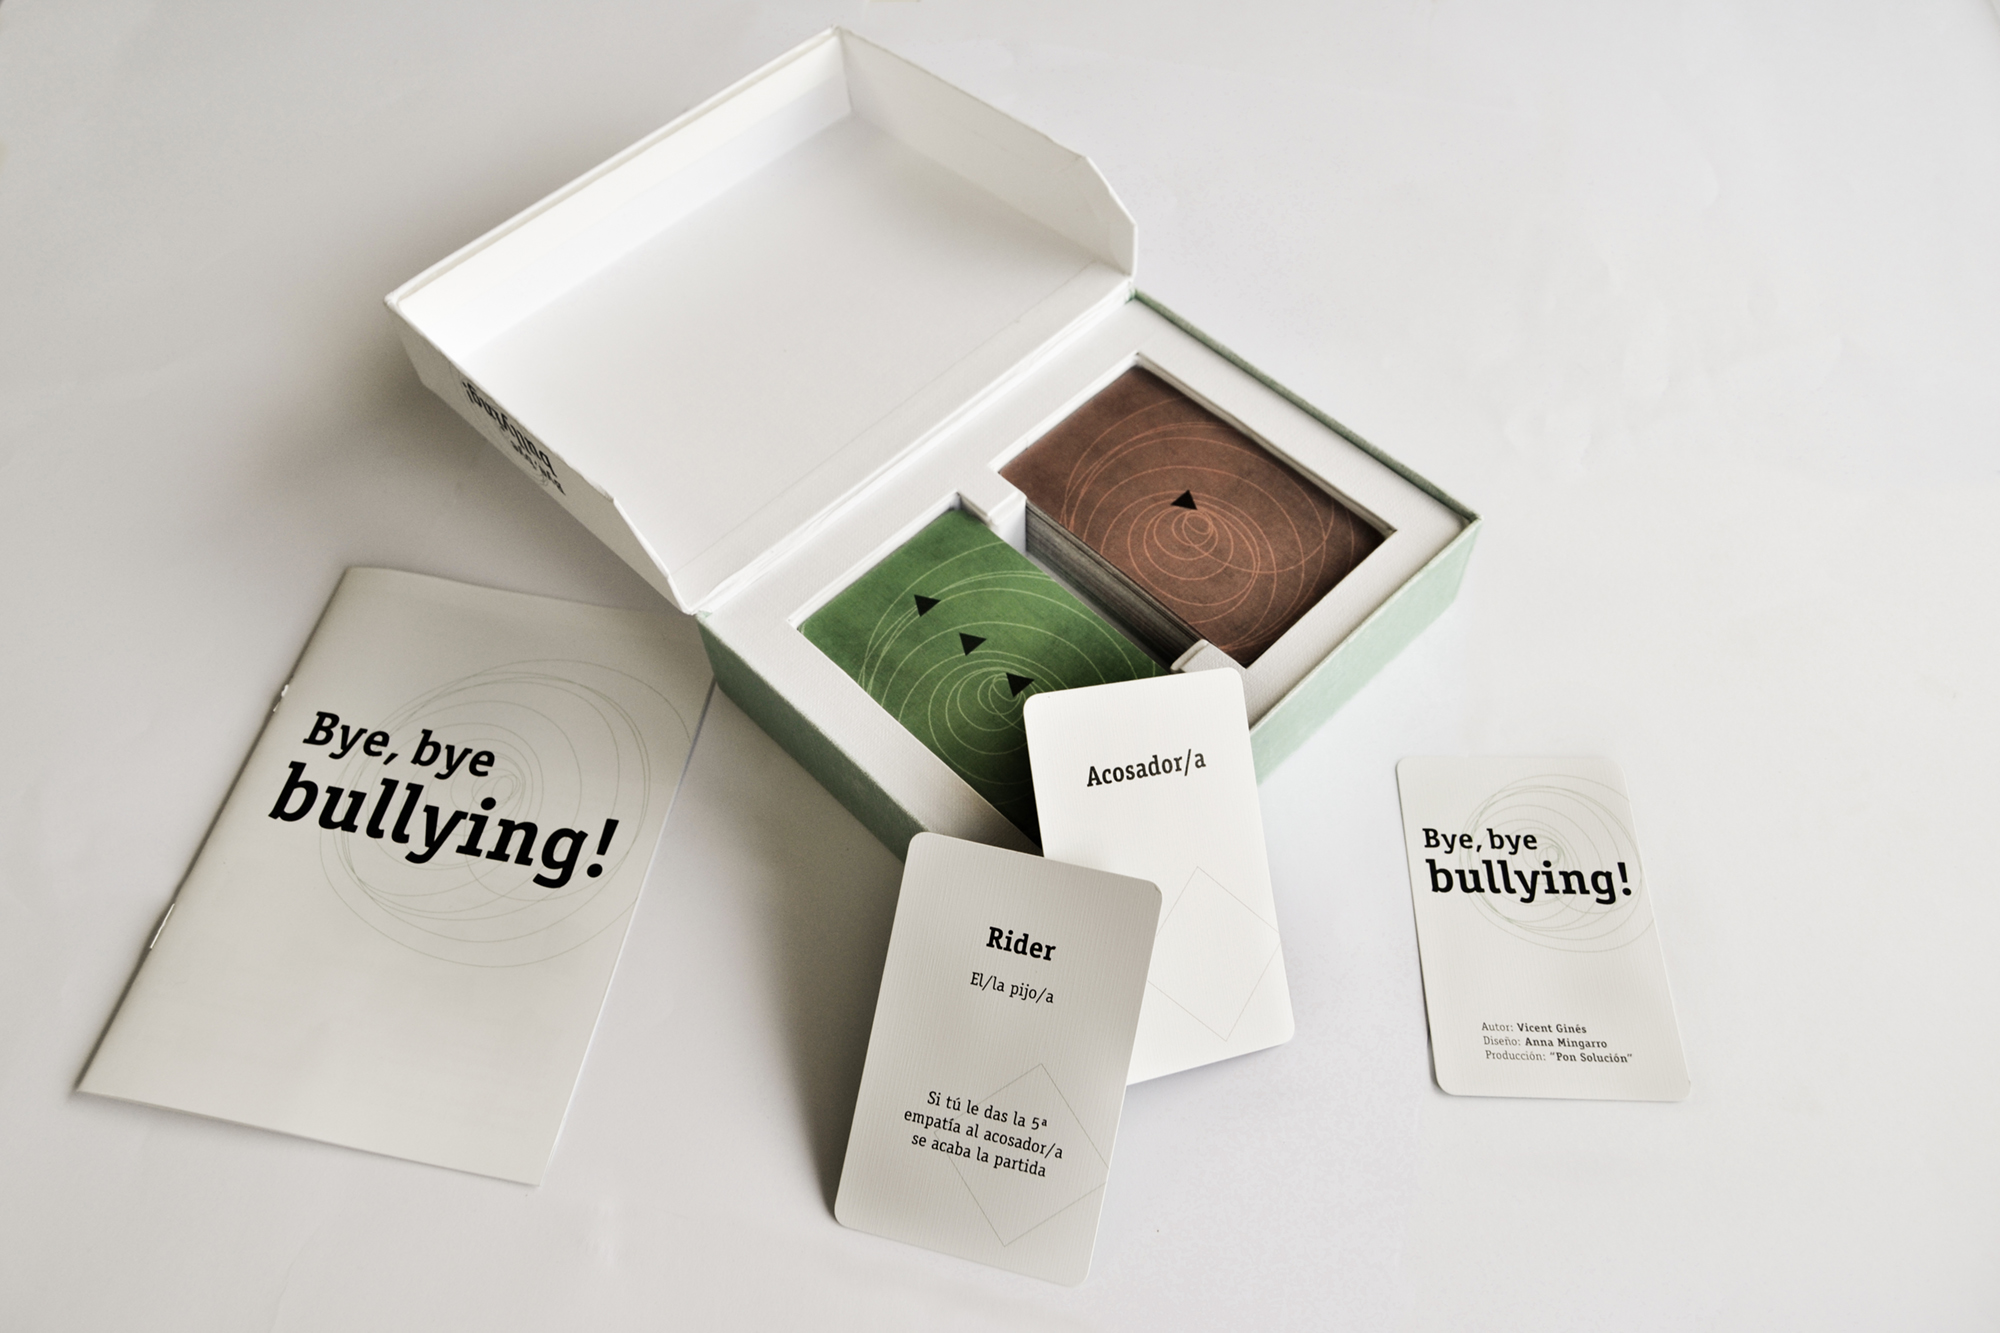 'Bye, bye bullying!' Juego de cartas by Anna Mingarro Mezquita - Creative Work - $i